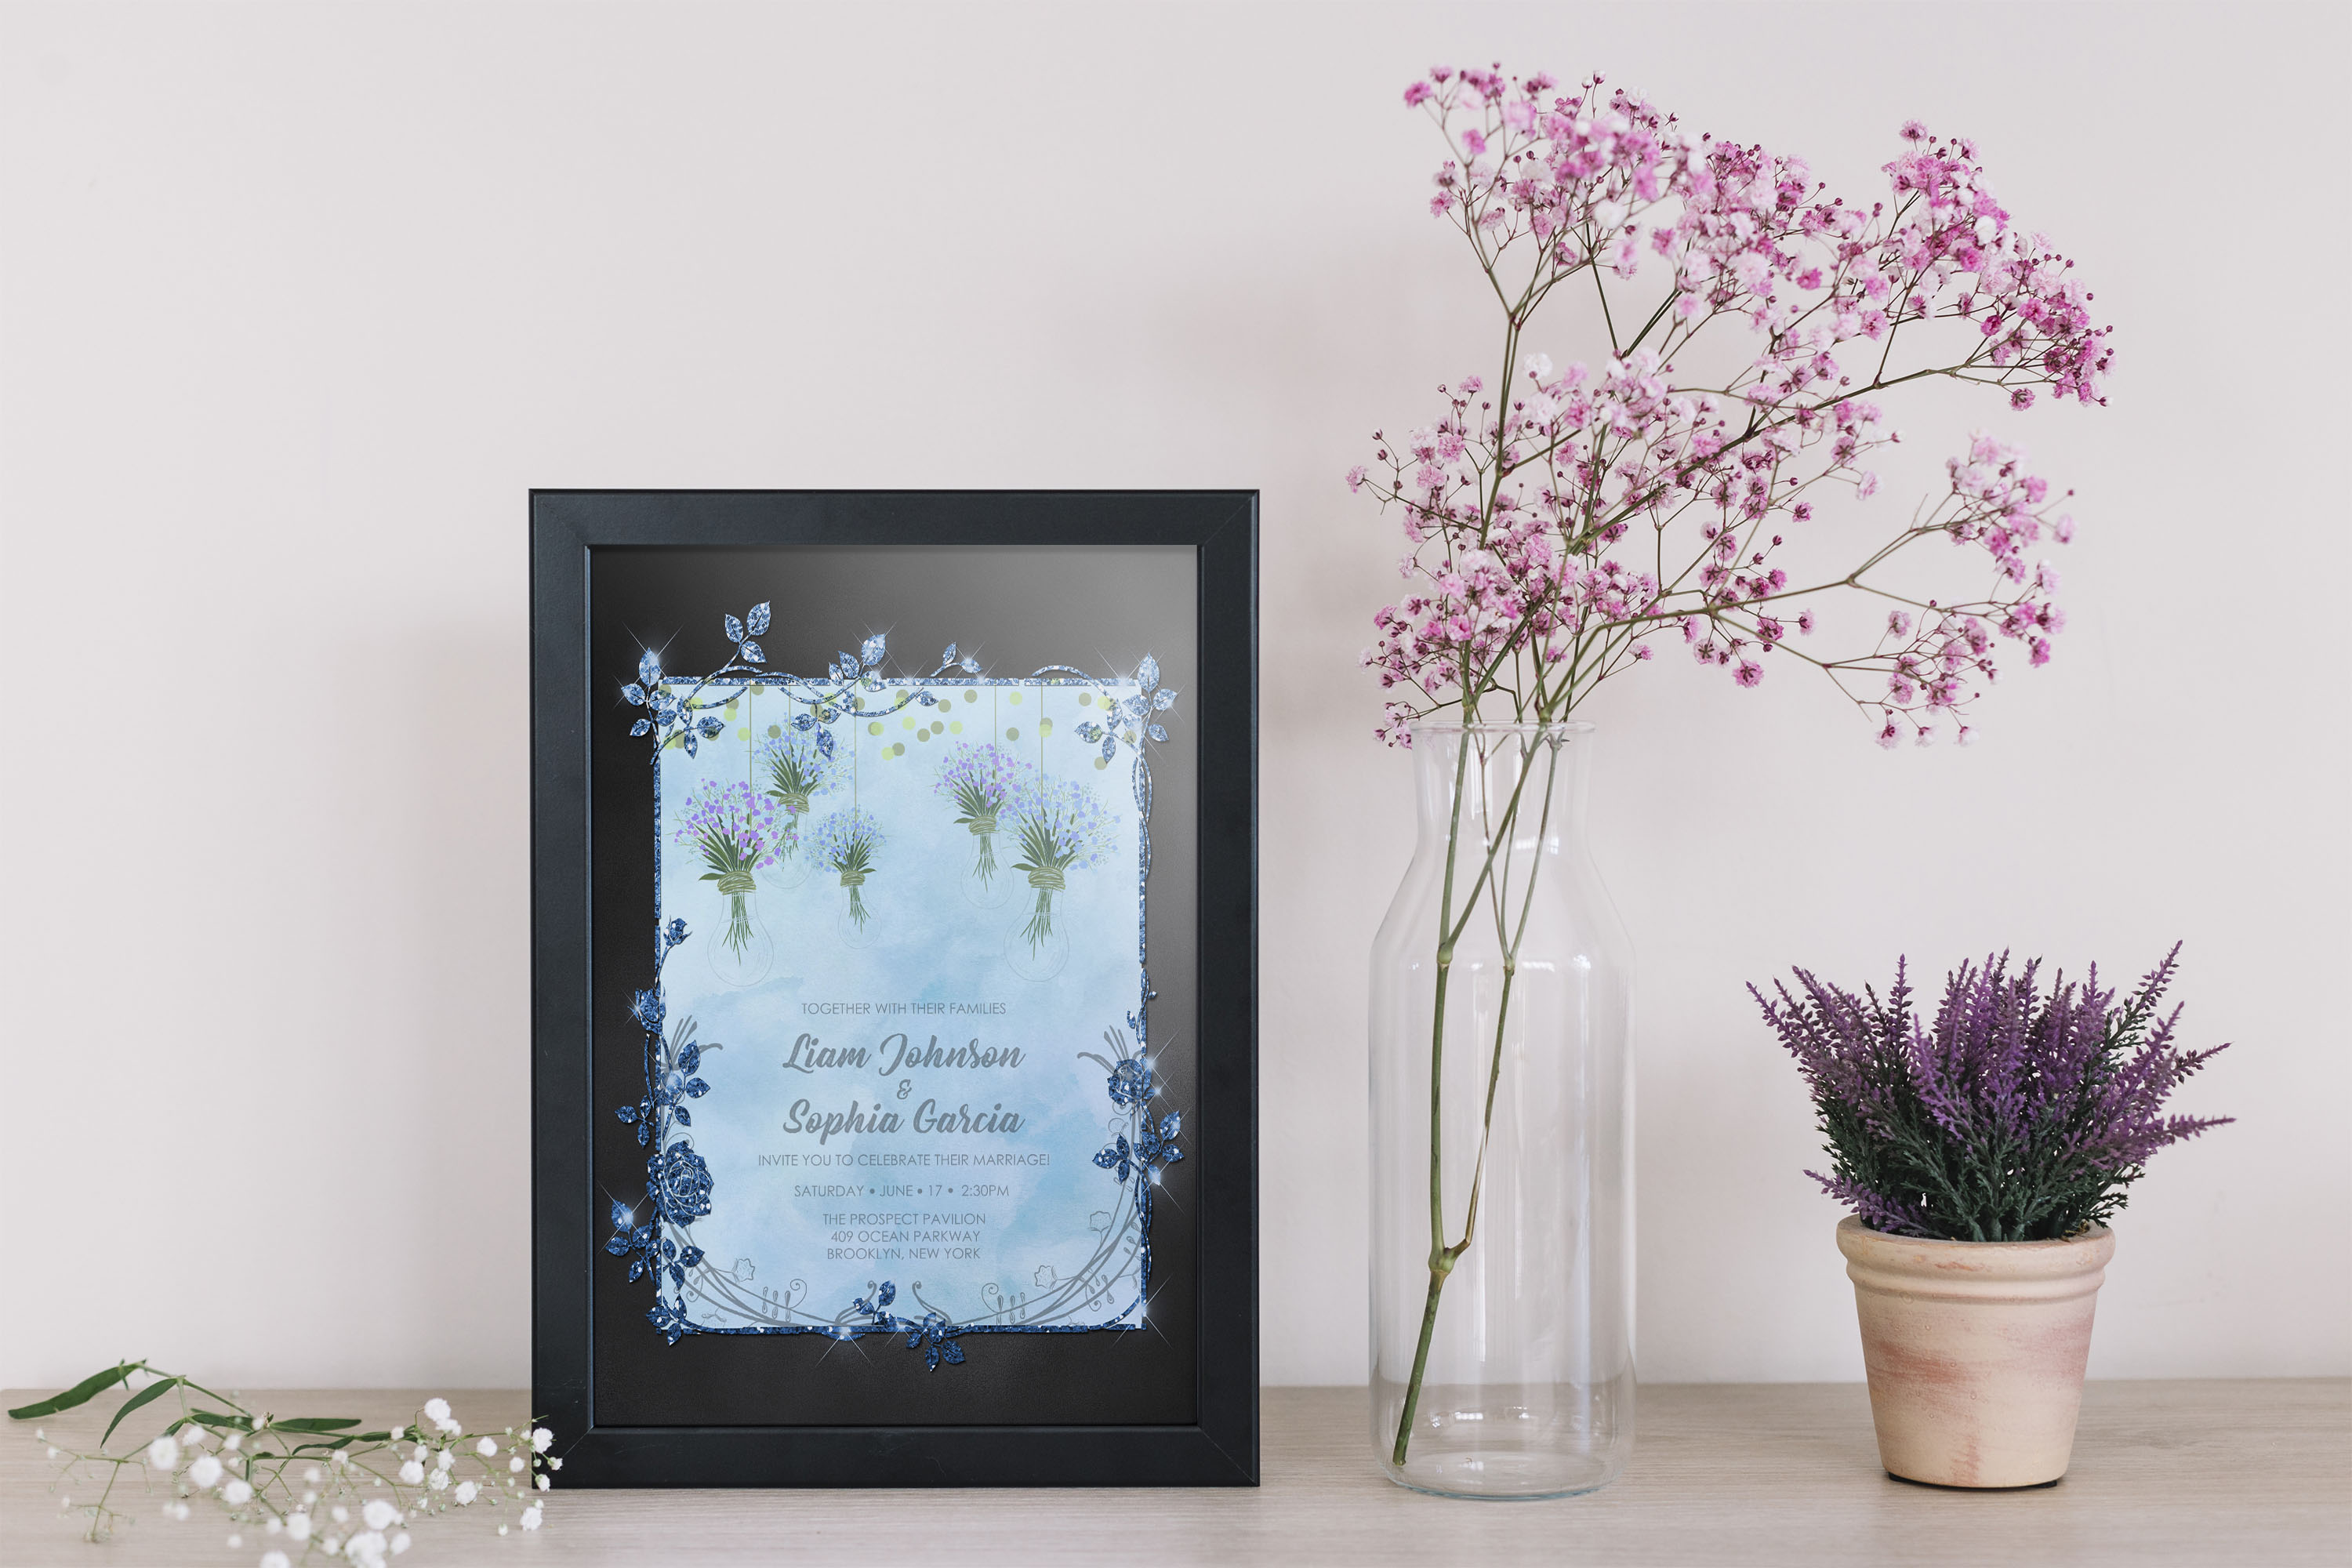 18 Glitter and Watercolor Leaf Branch Frame Invitation 5x7